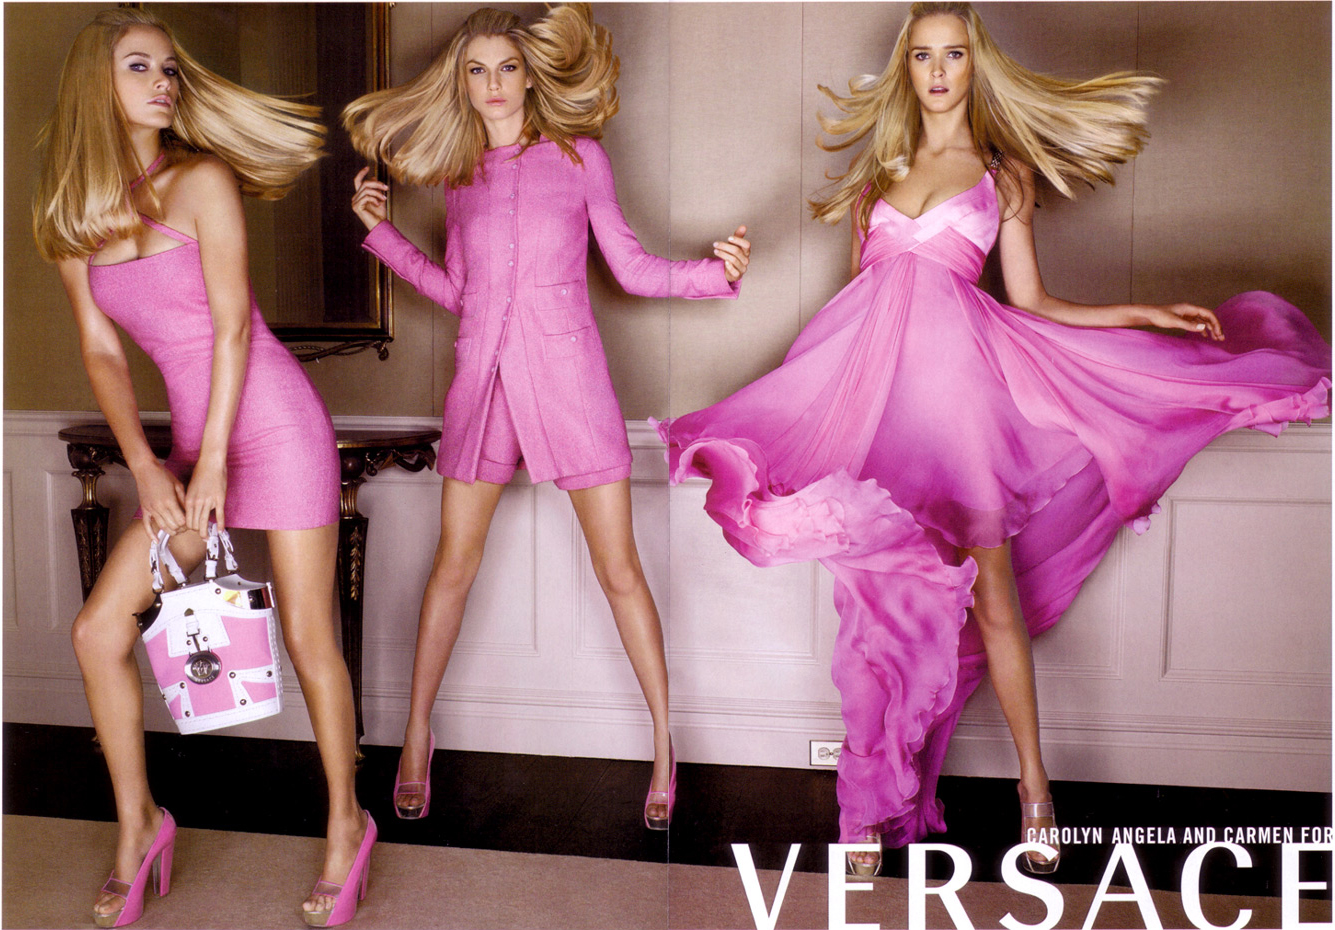 Versace-Clothing-Brands-img